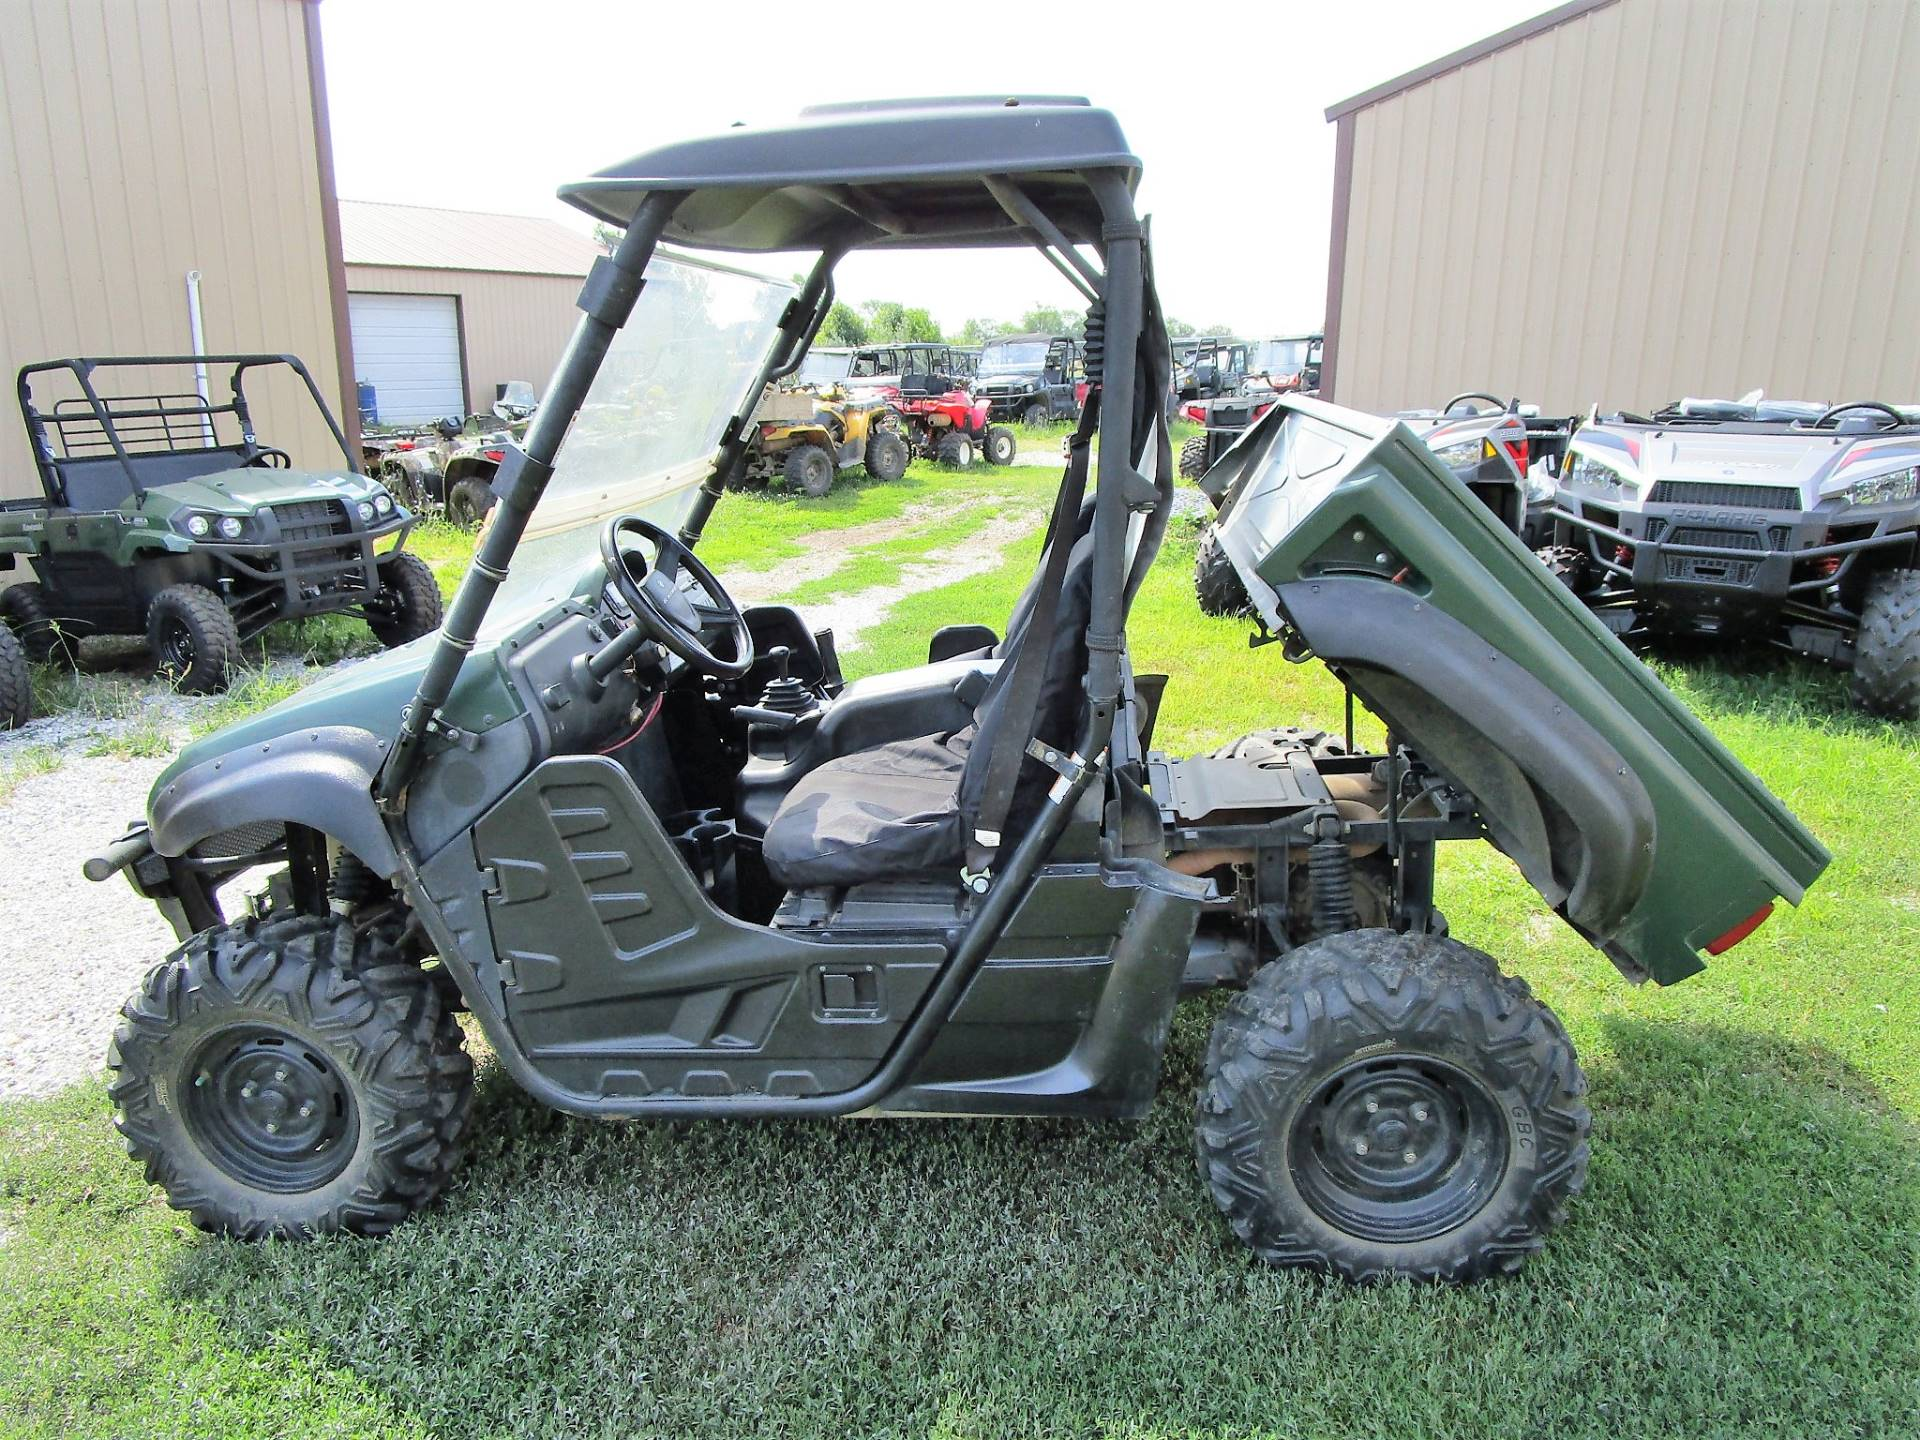 2012 Yamaha Rhino 700 FI Auto. 4x4 in Kirksville, Missouri - Photo 3